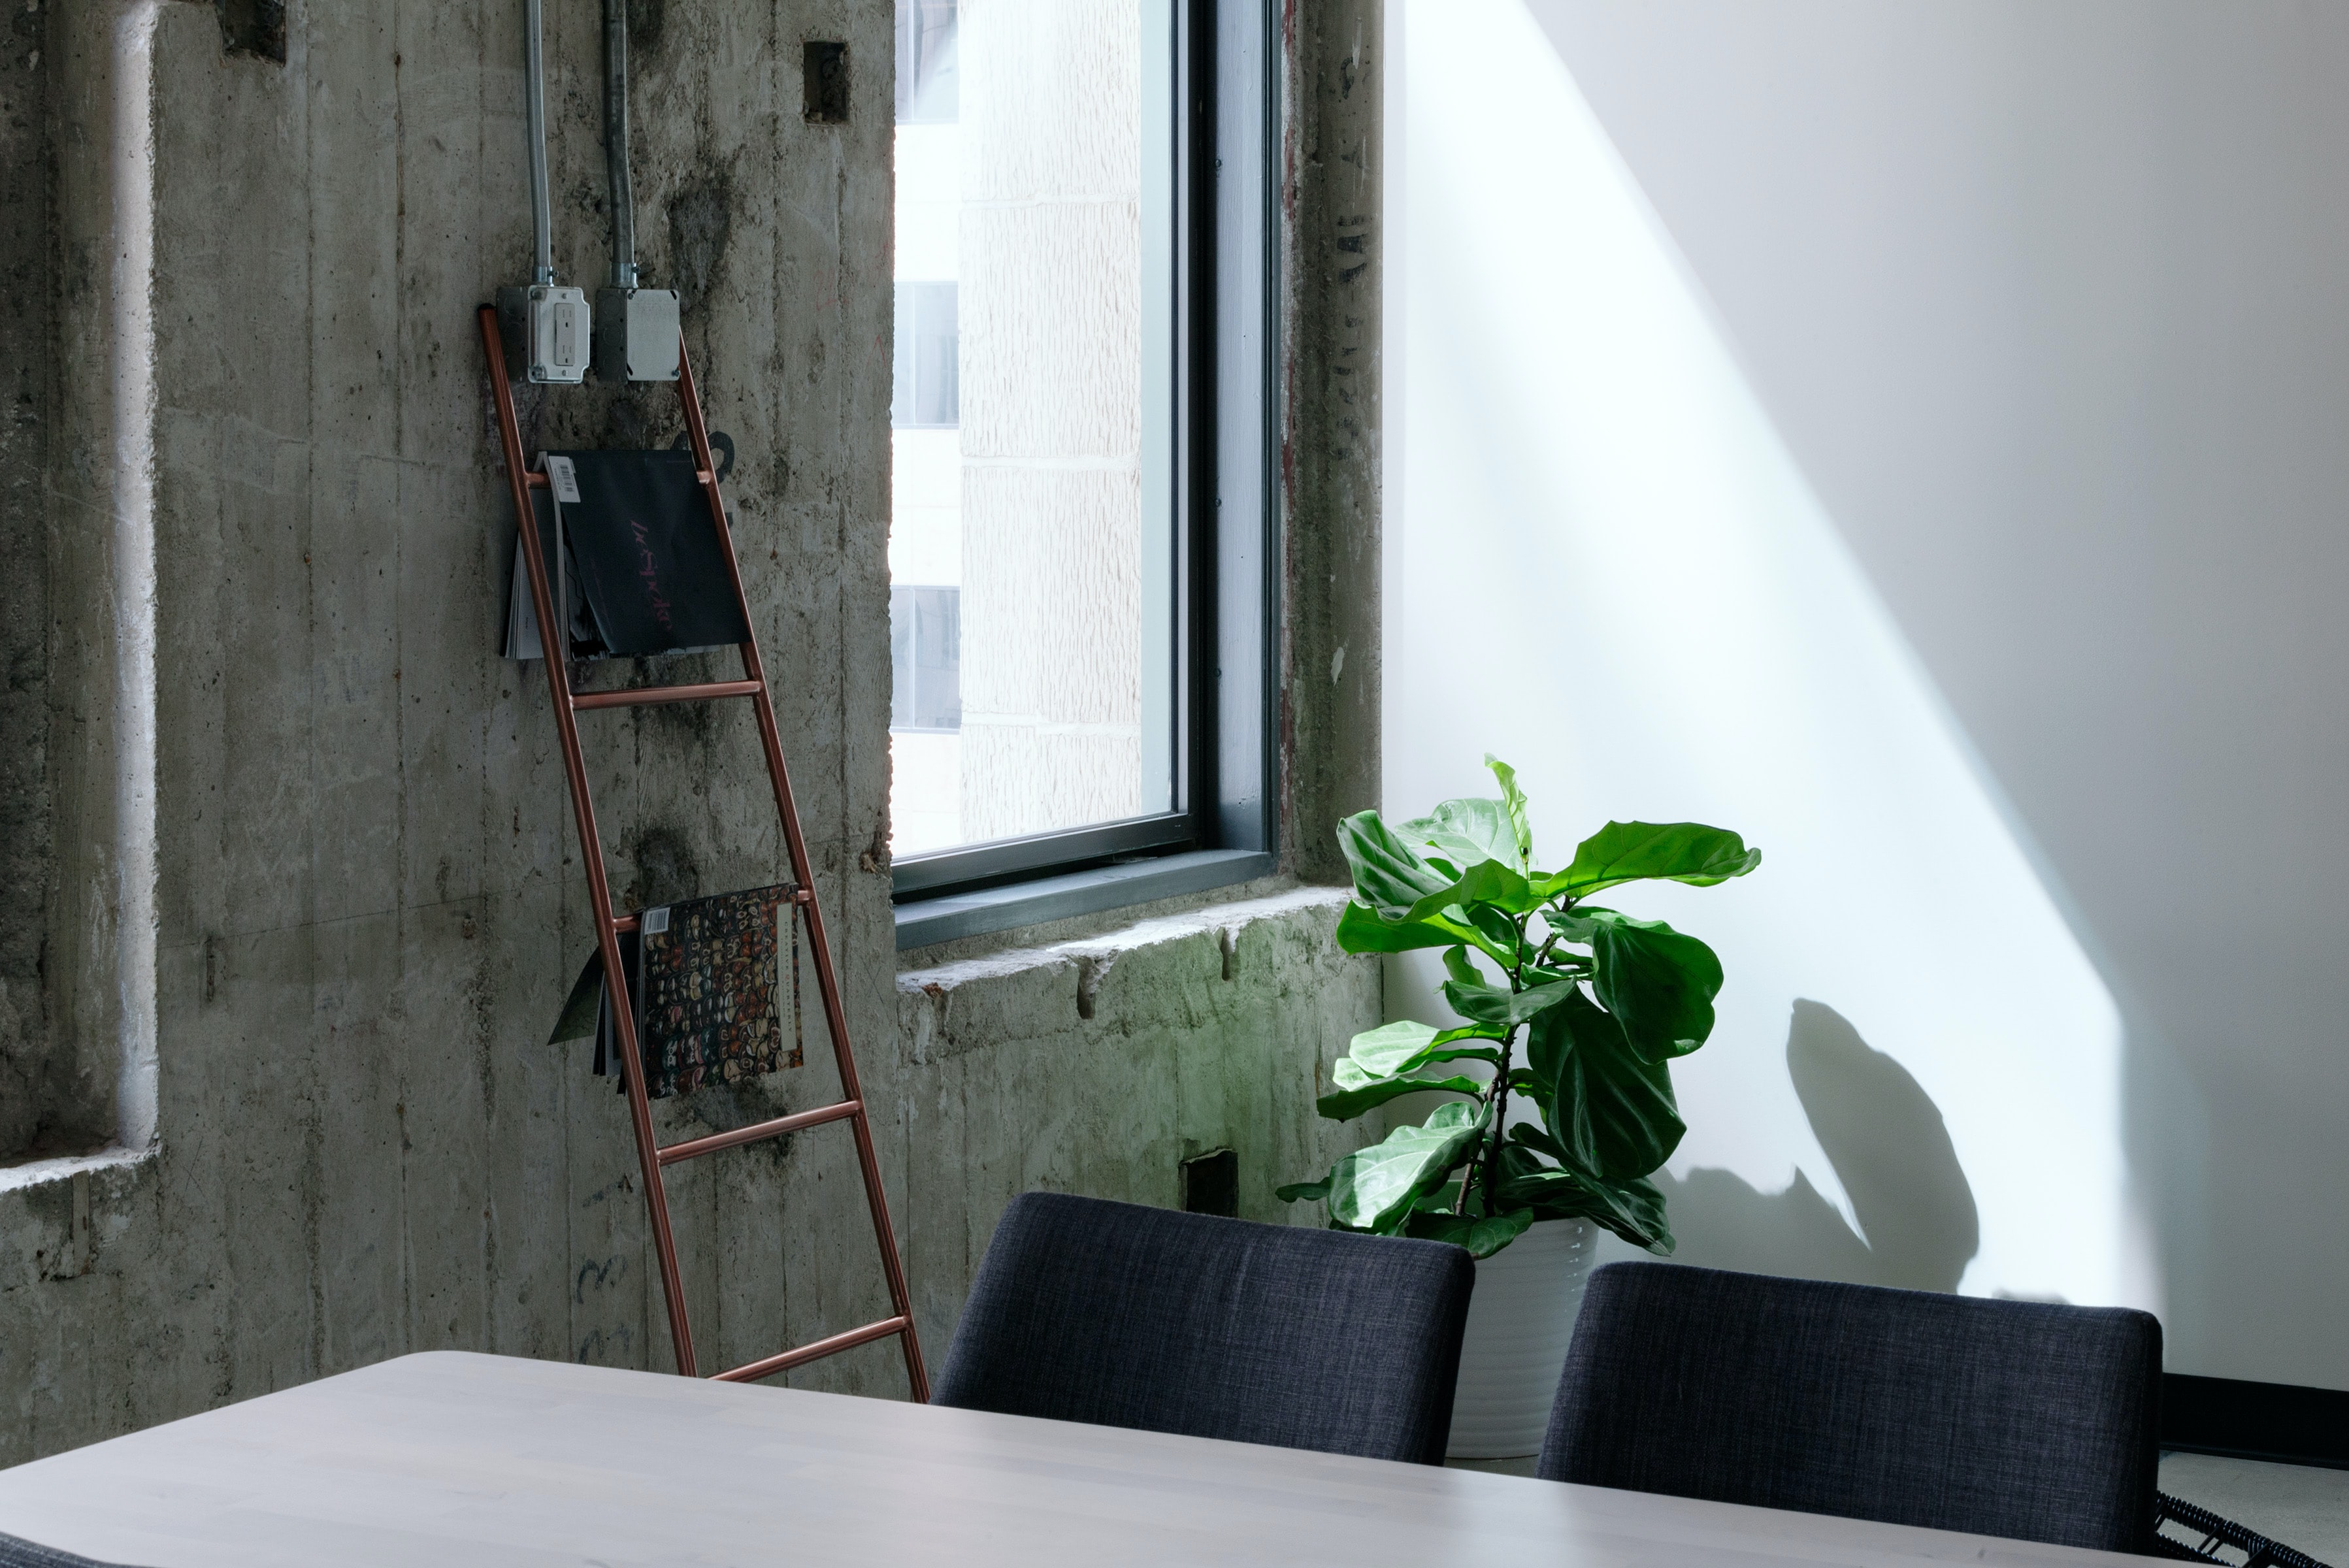 A large potted plant in the corner of an office